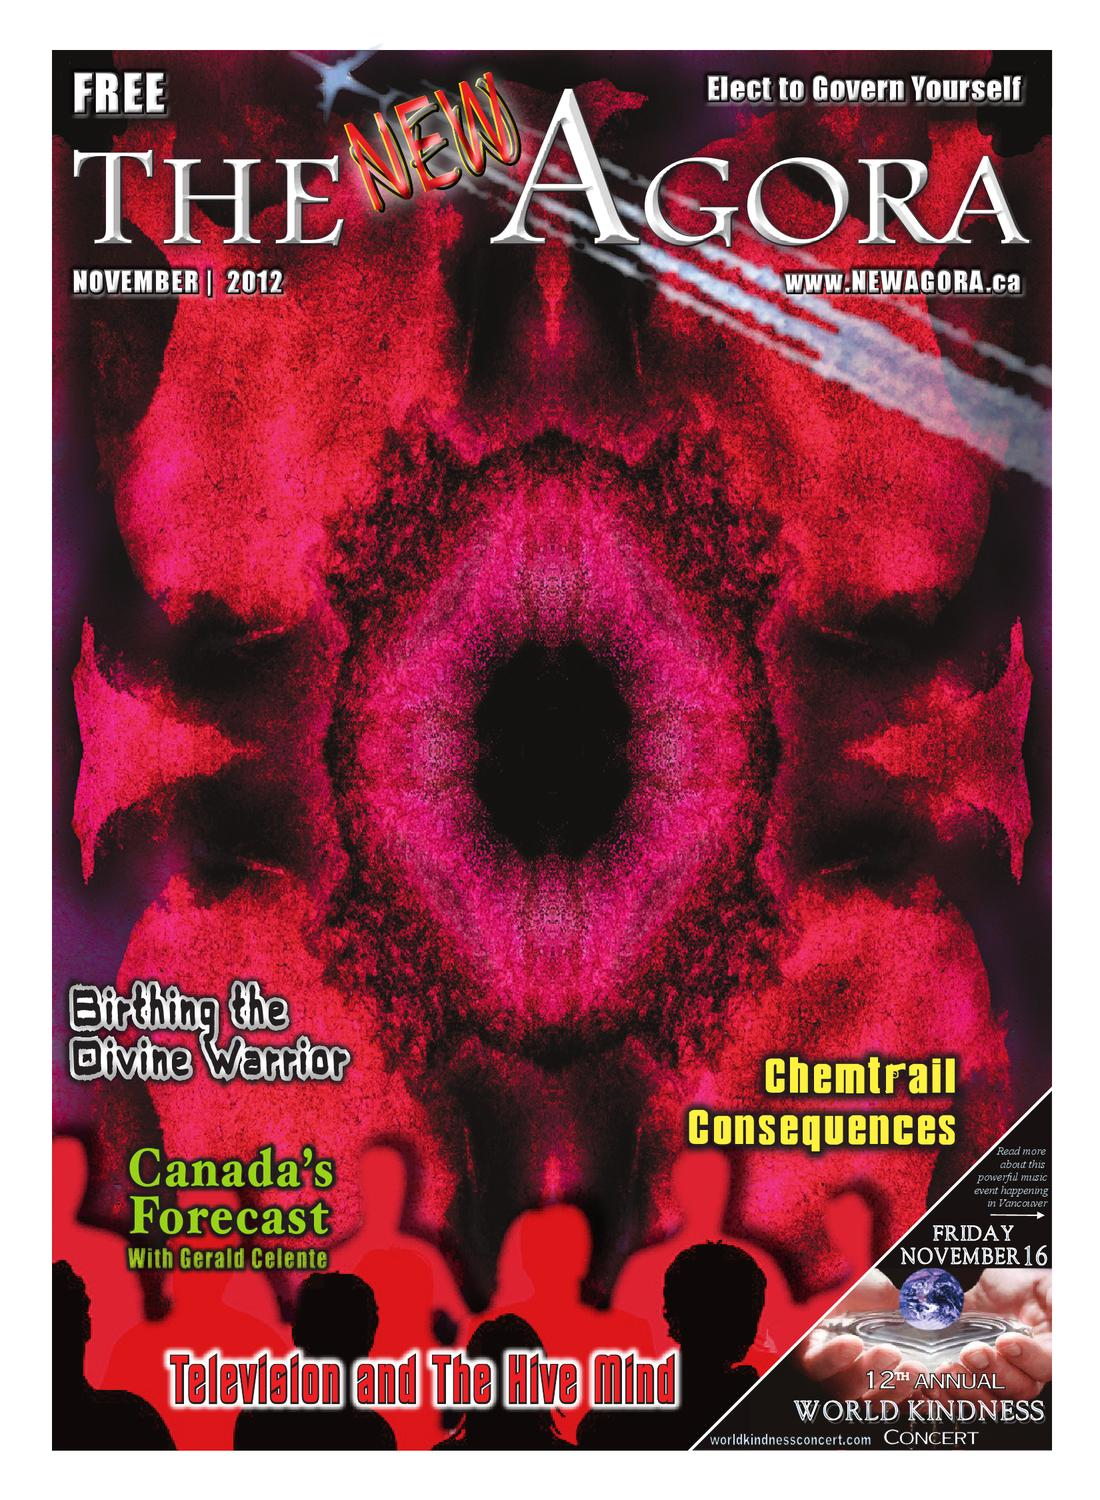 The new agora november 2012 by the new agora issuu fandeluxe Images